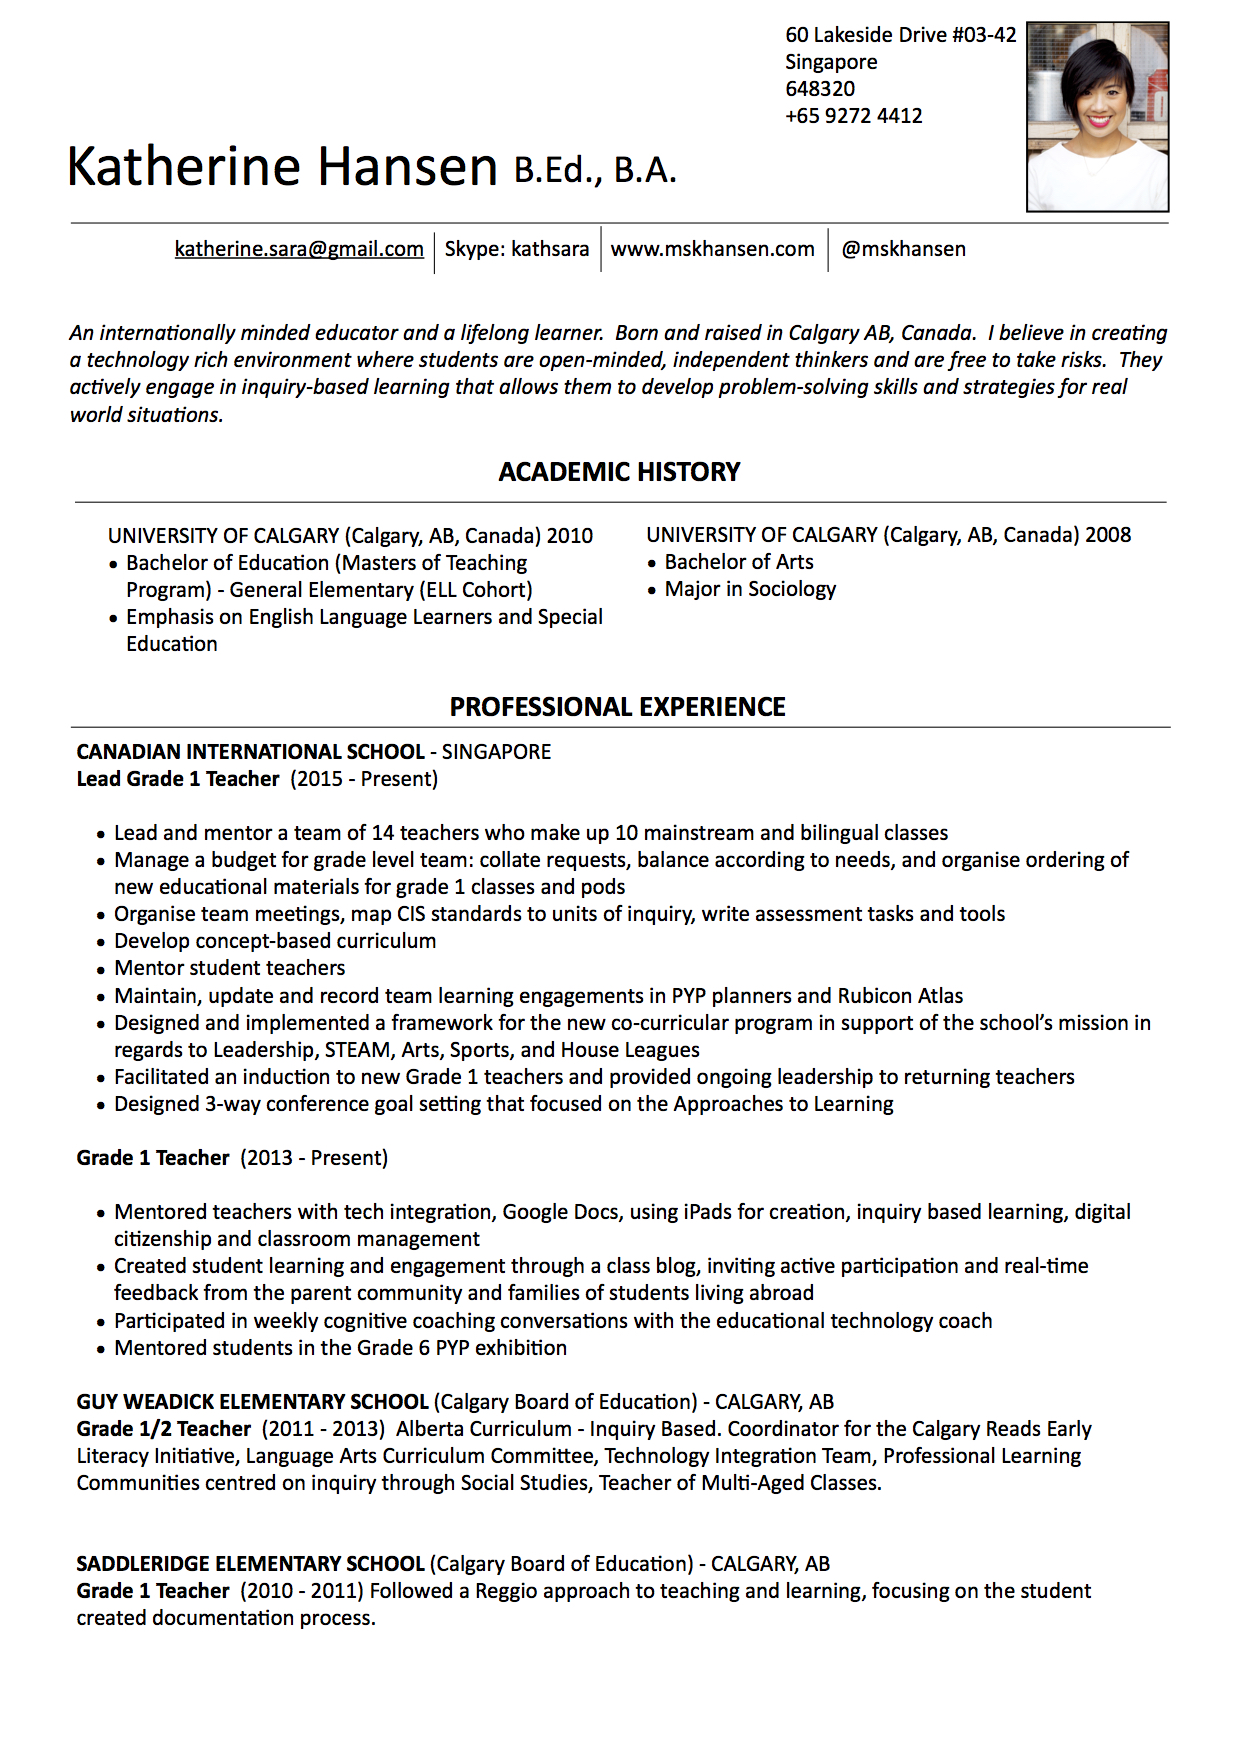 Resume – Ms. K Hansen